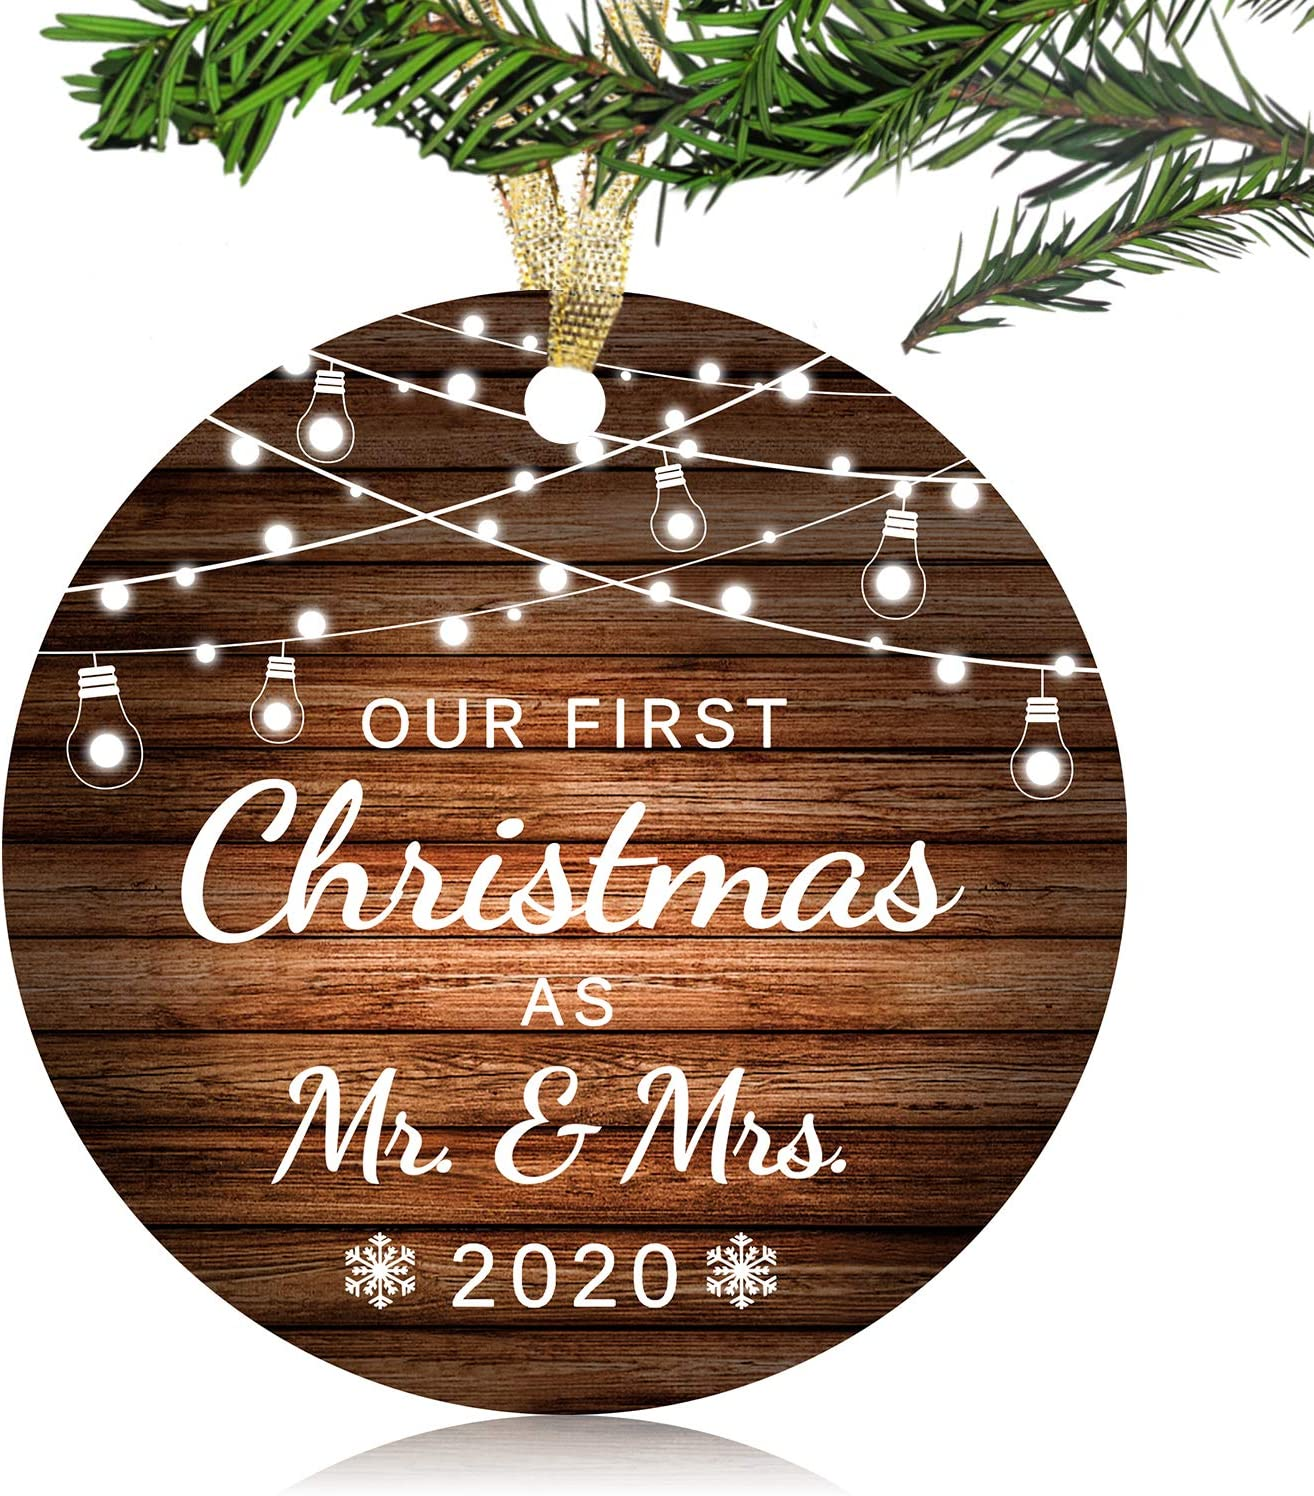 "NURIONSS Our First Christmas as Mr & Mrs Ornaments 2020 - Christmas Wedding Decoration Gift for Couple Married Newlyweds - 3"" Ceramic Ornament(Mr & Mrs)"